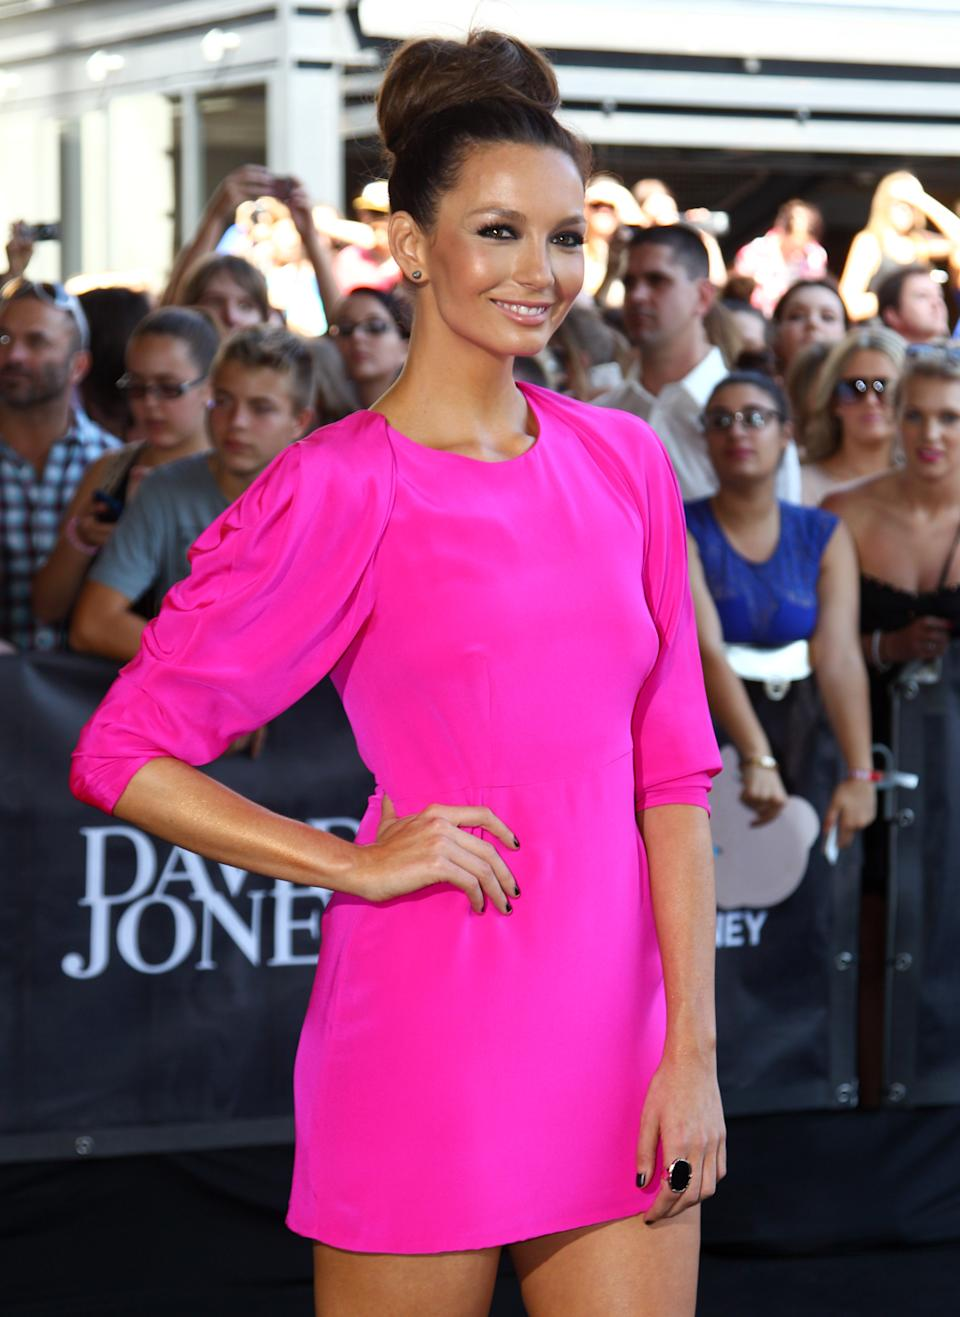 Ricki-Lee Coulter arrives for the Australian music industry Aria Awards in Sydney, Thursday, Nov. 29, 2012. (AP Photo/Rick Rycroft)